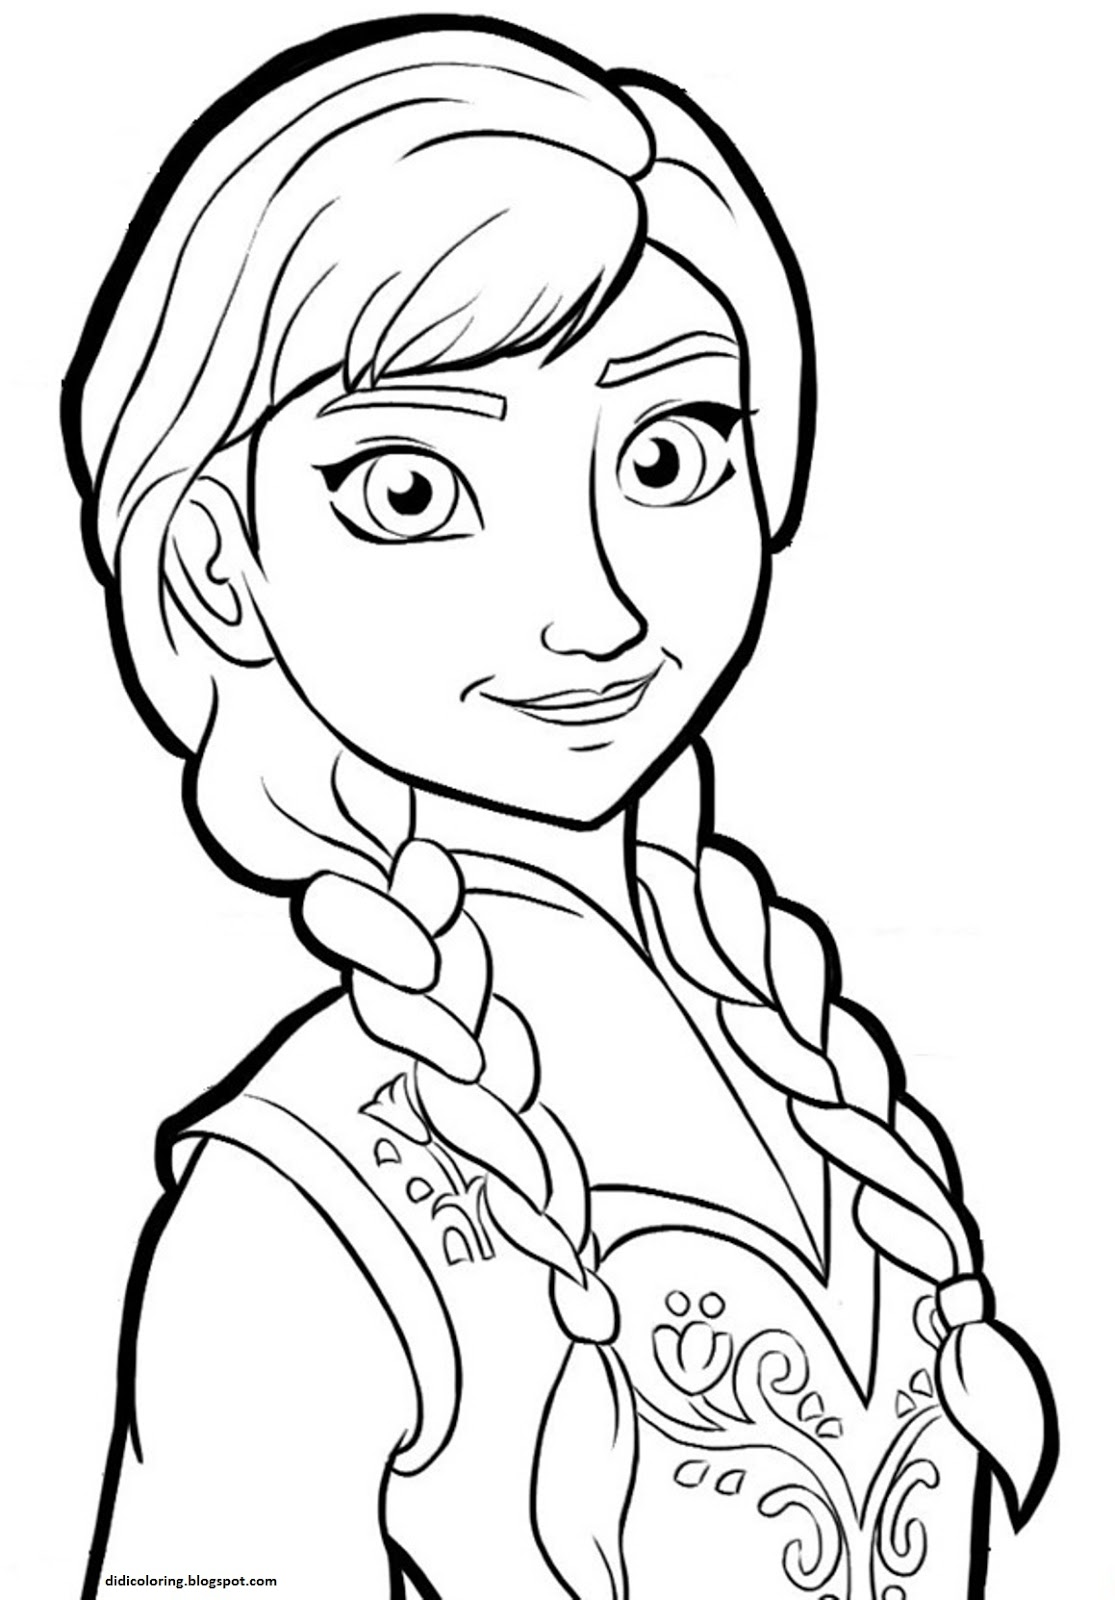 walt disney characters coloring for children didi coloring page